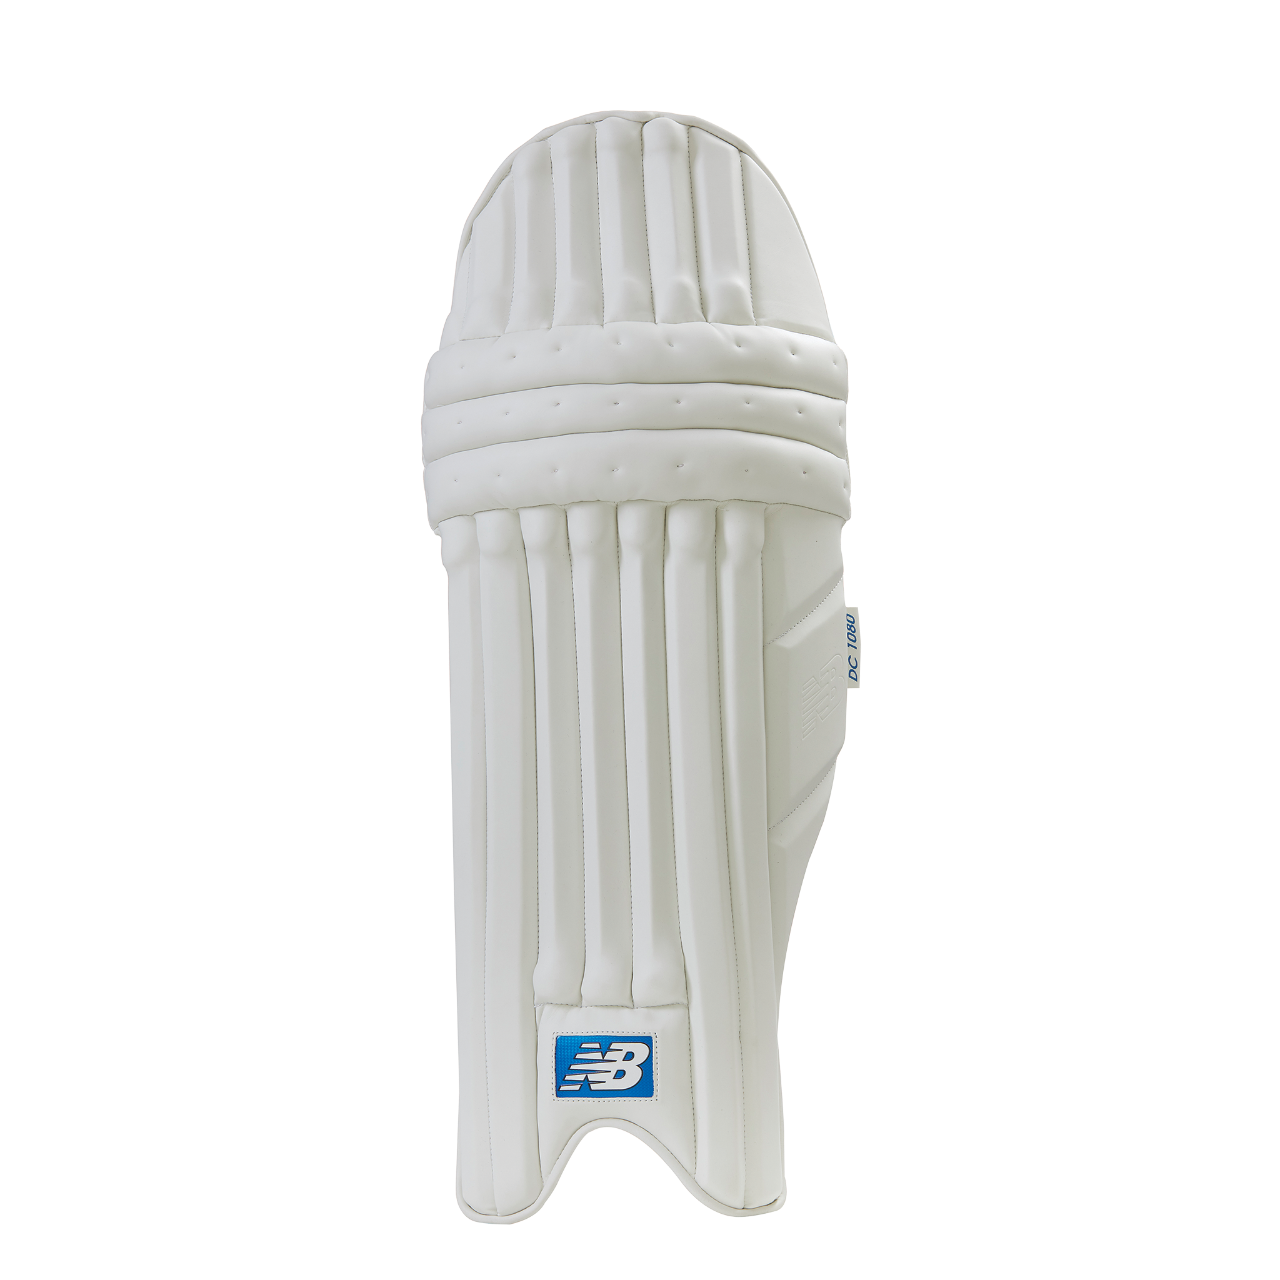 2019 New Balance DC 1080 Batting Pads